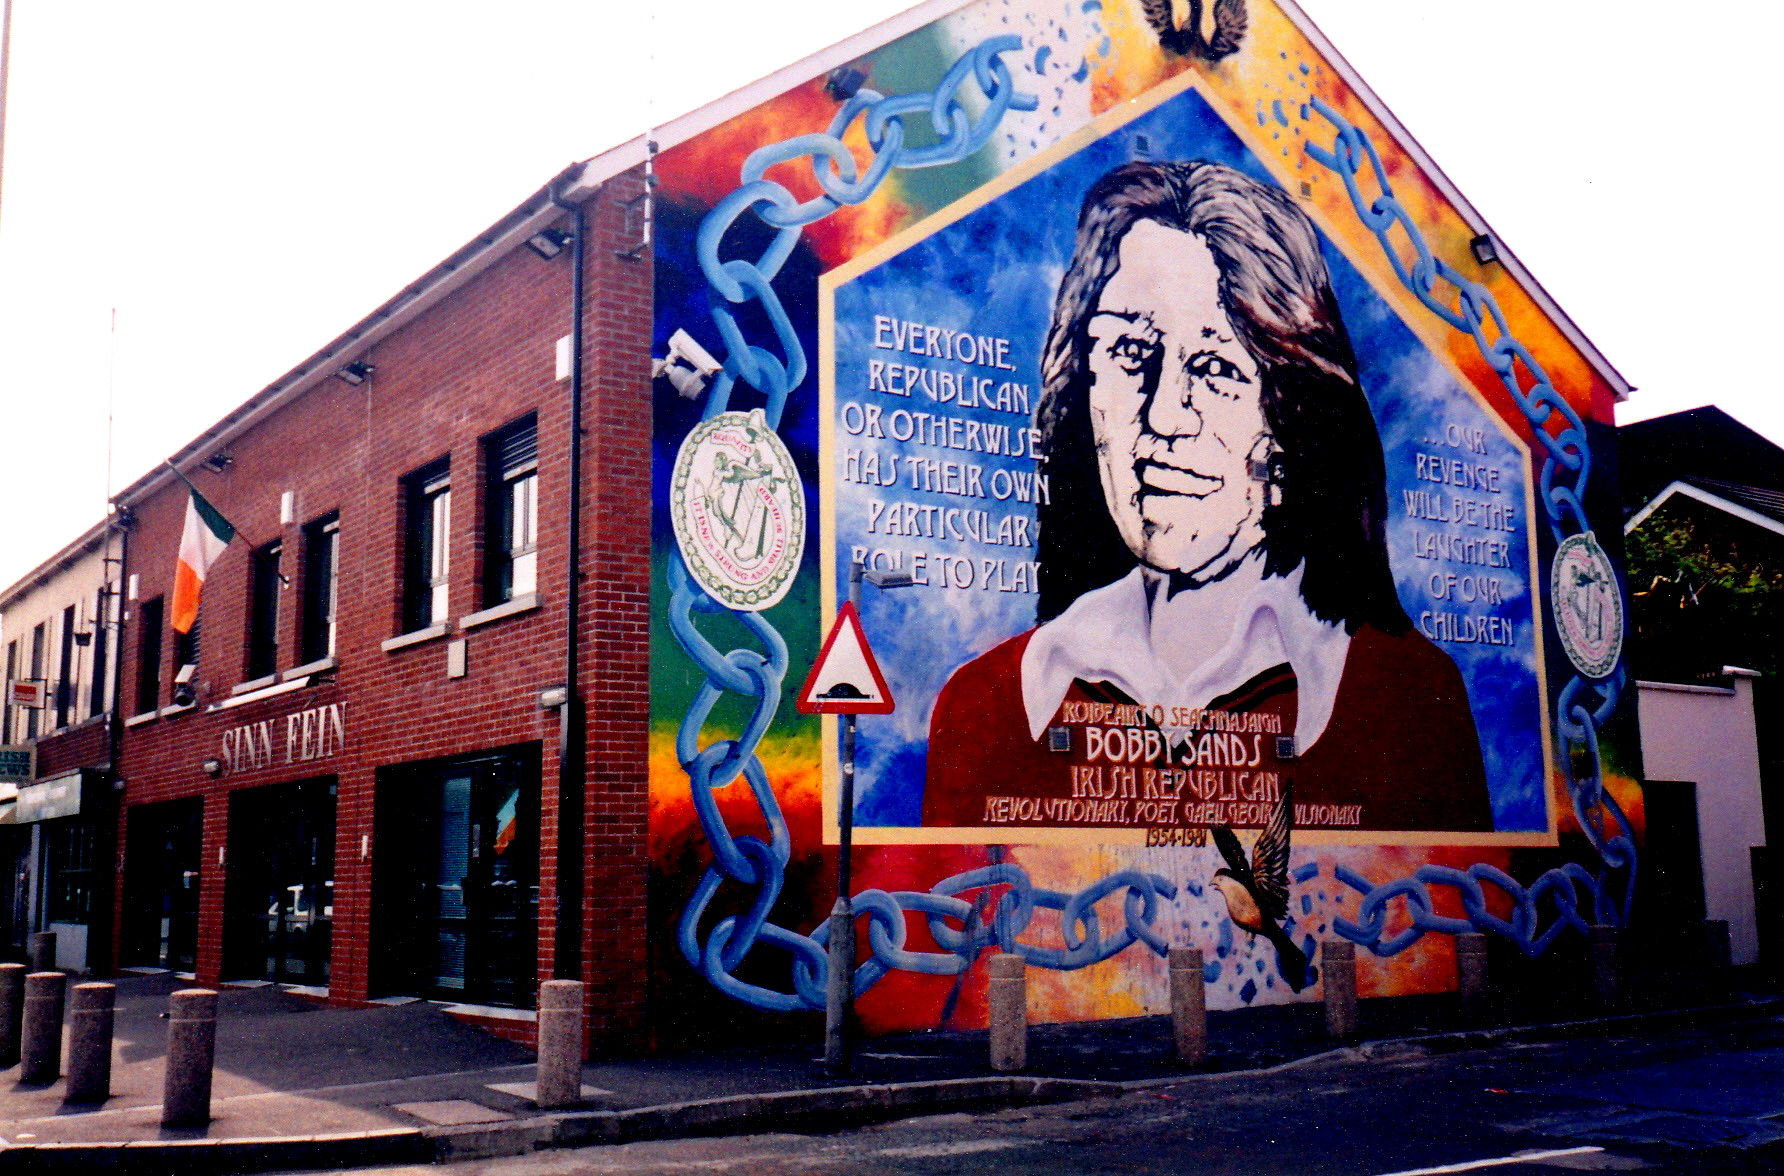 Bobby sands mural in belfast maryann adair 39 s 39 is it art for Bobby sands mural